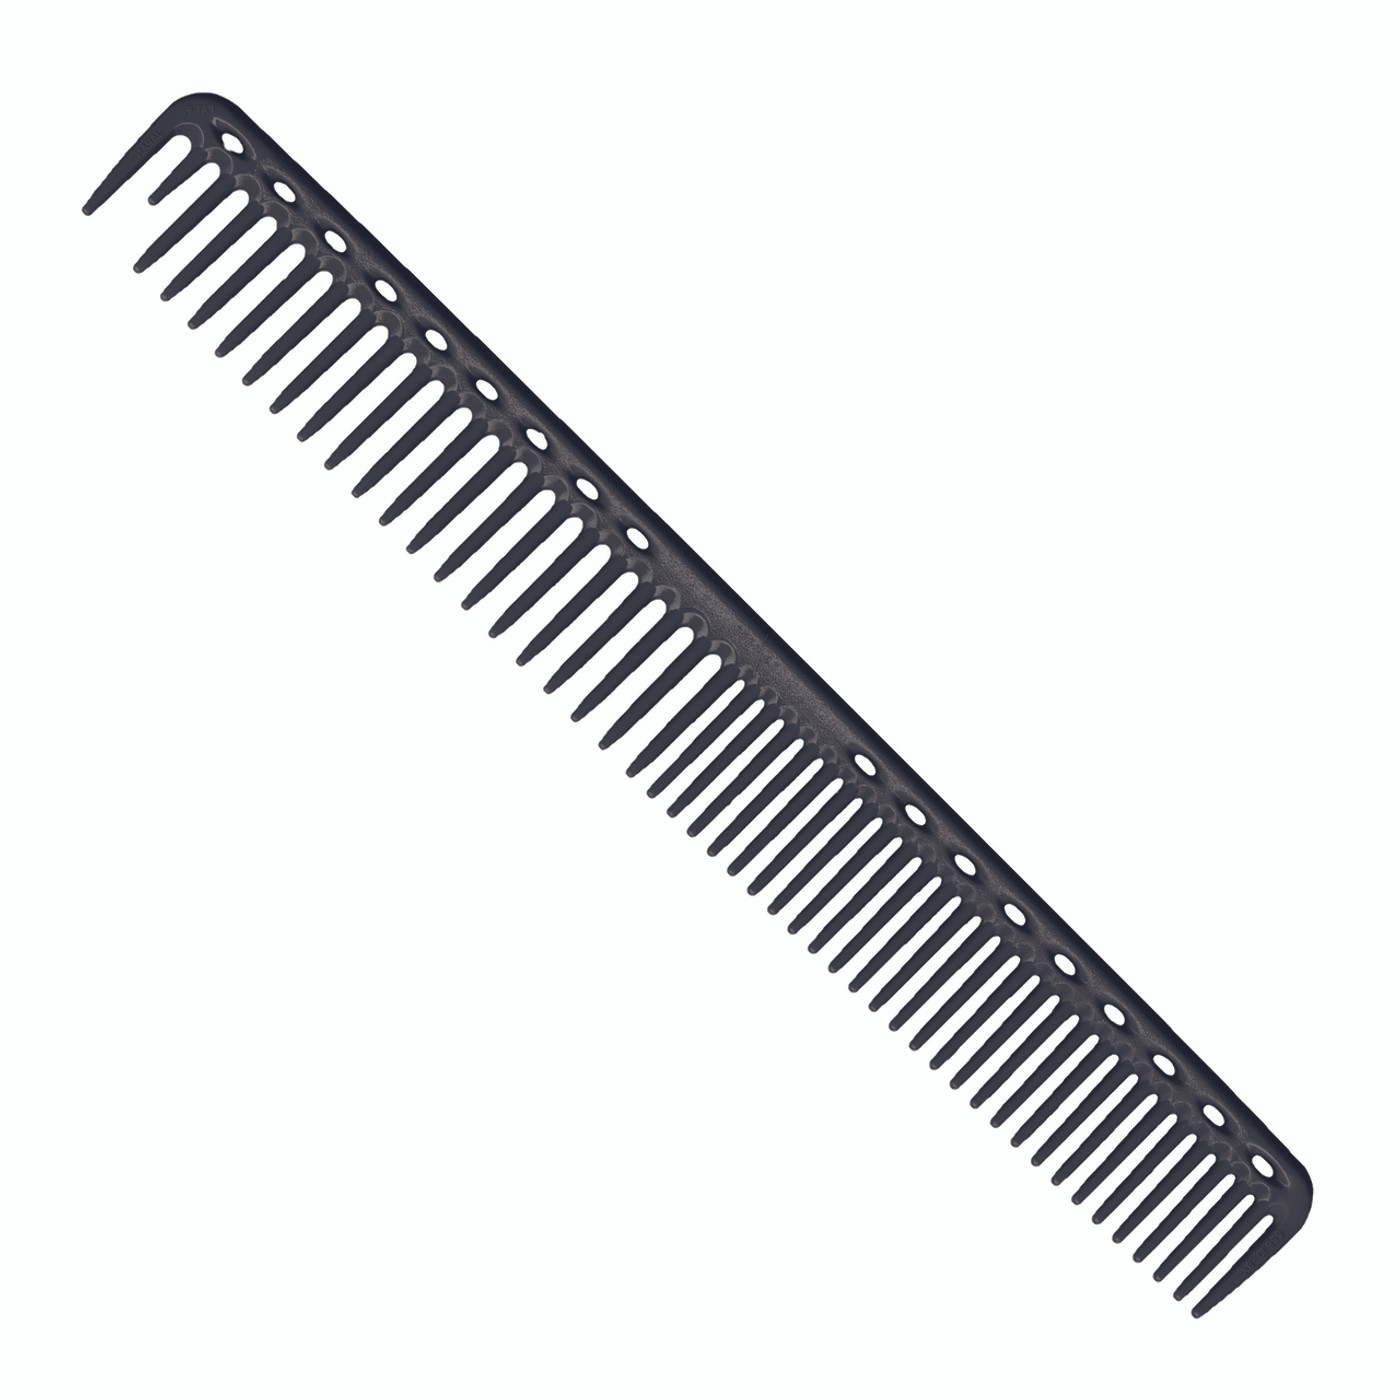 YS Park 333 Long Round Tooth Cutting Comb - Carbon Black